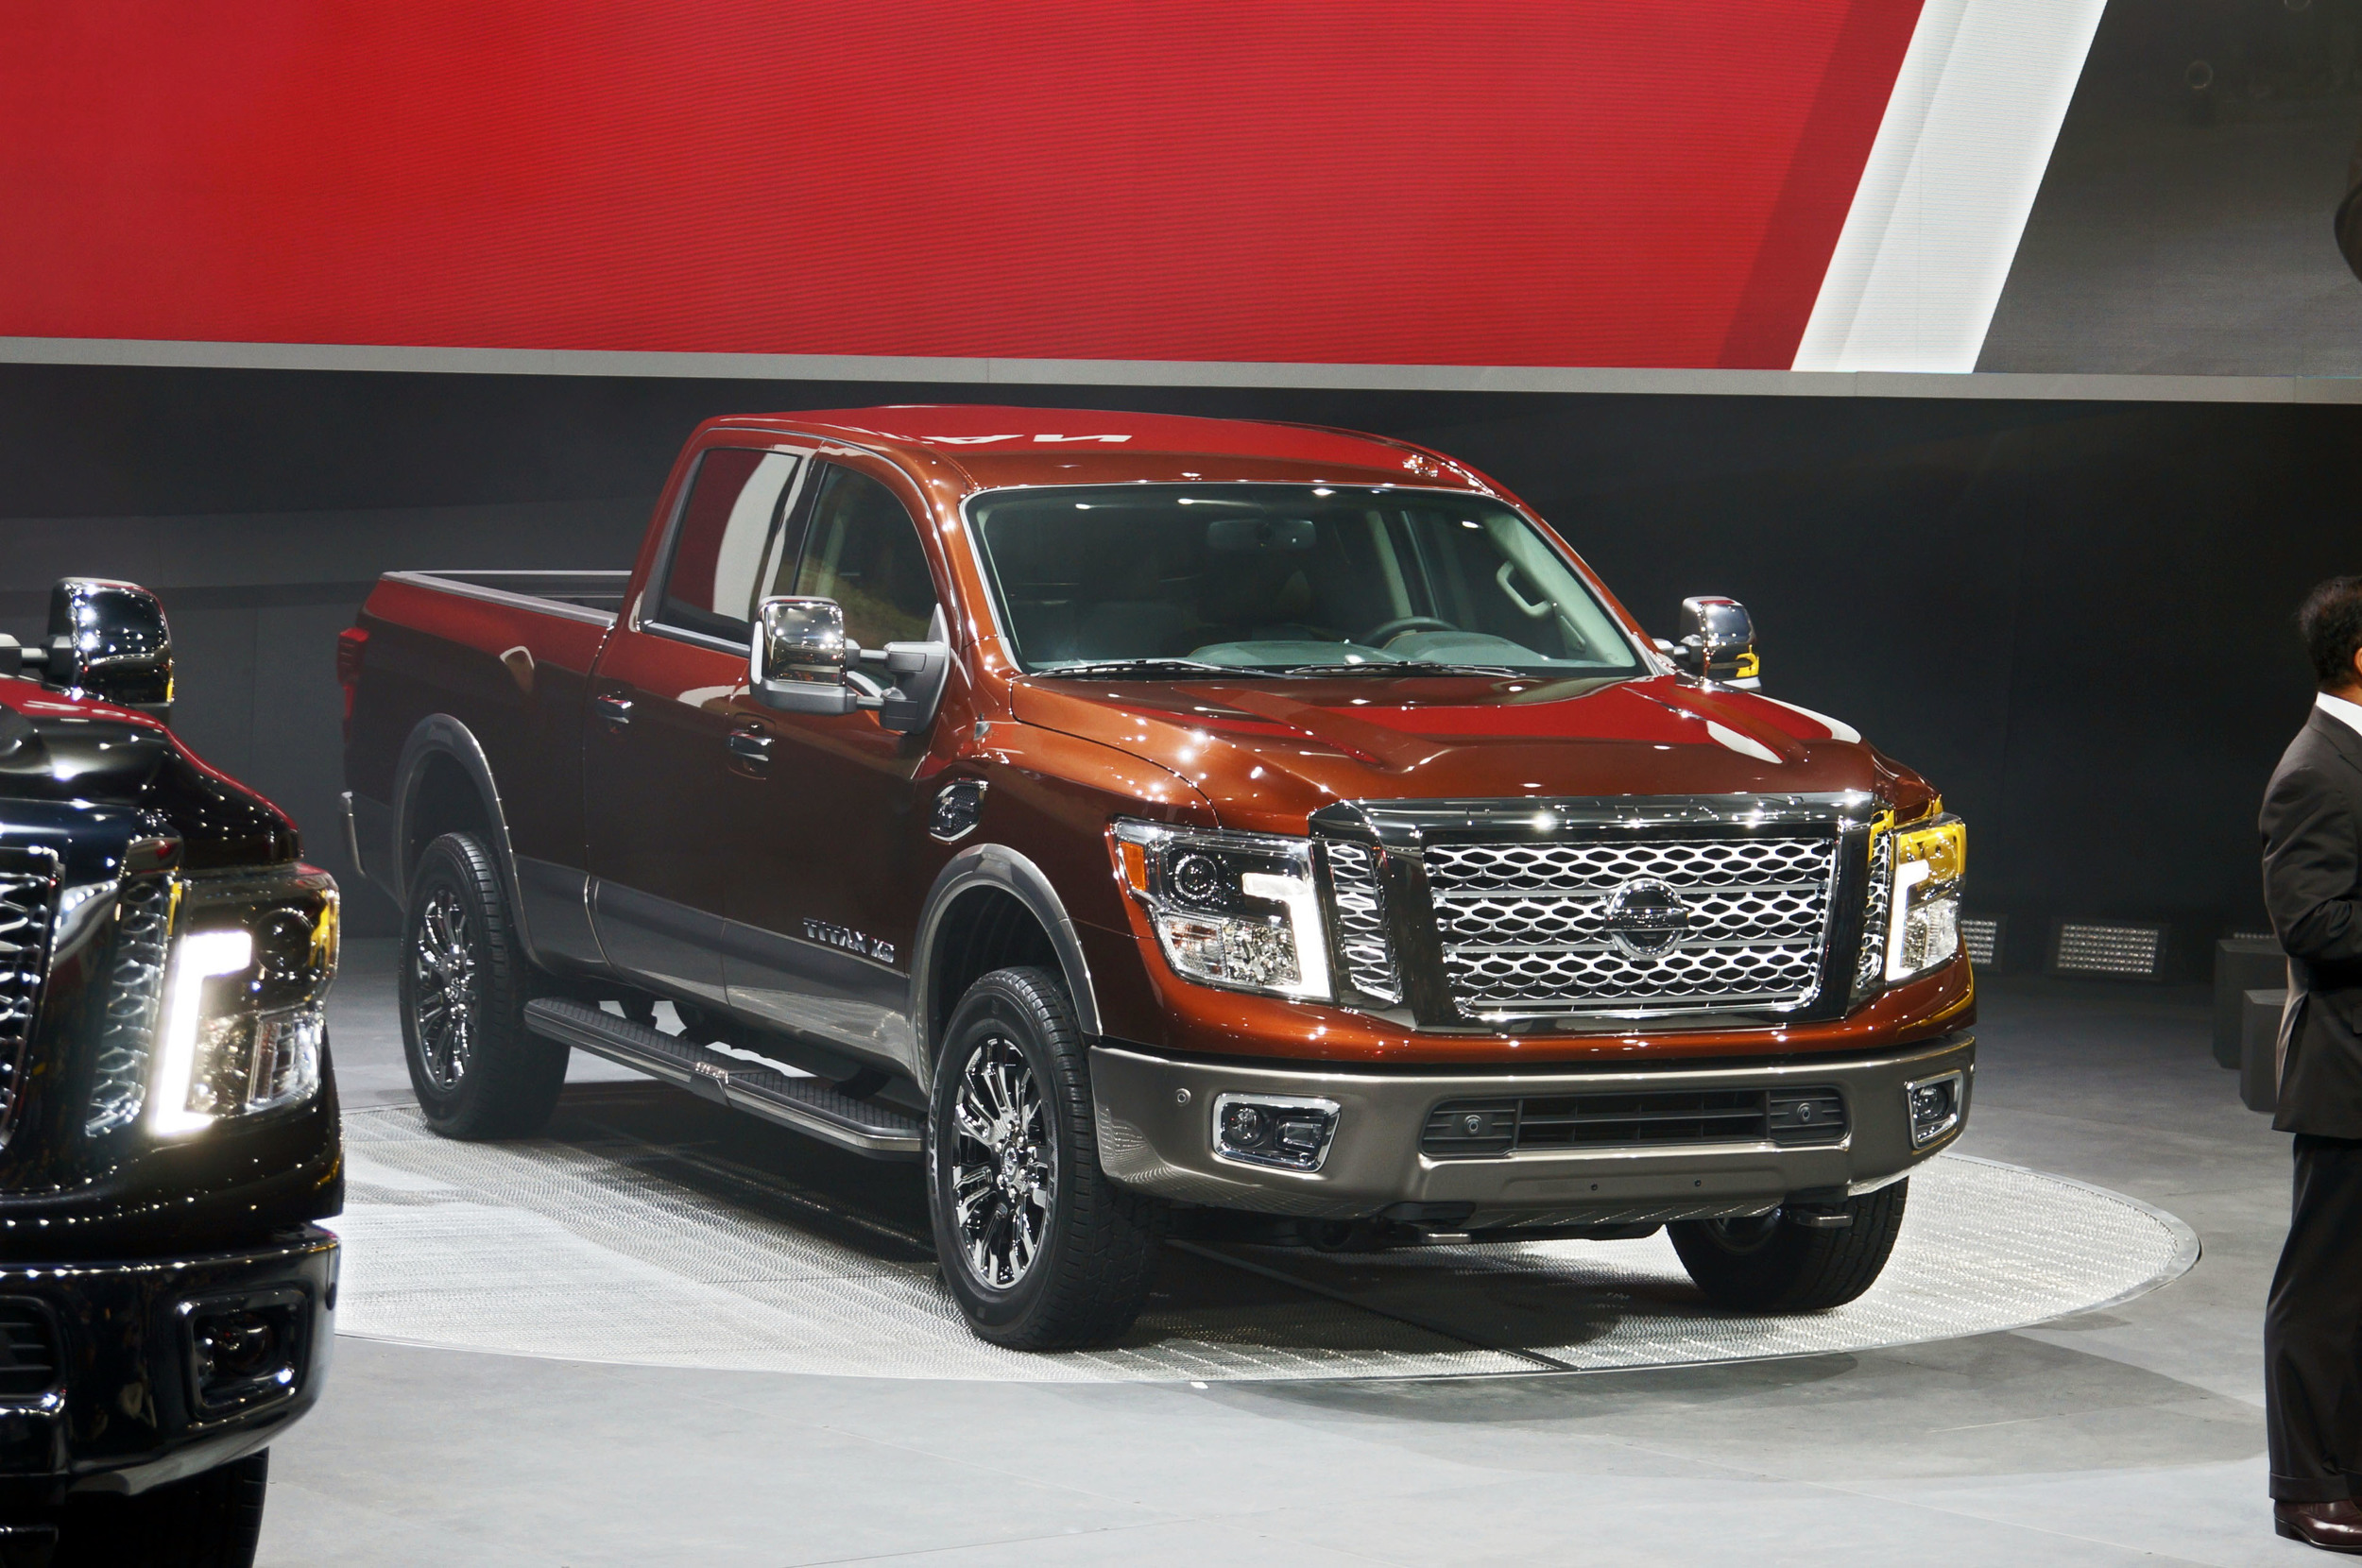 2016 nissan titan xd detroit 2015 photo gallery autoblog. Black Bedroom Furniture Sets. Home Design Ideas